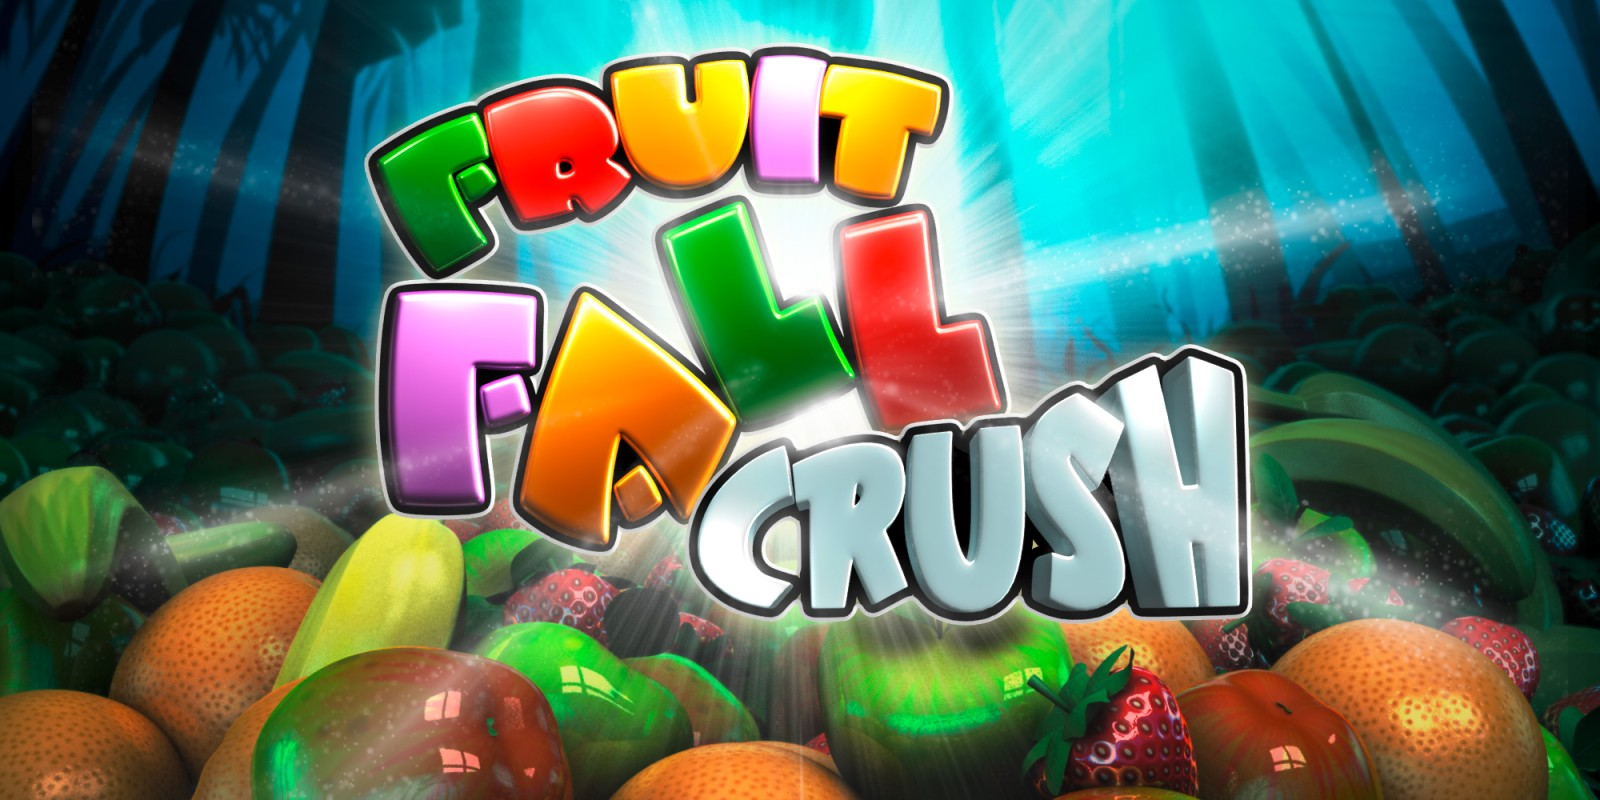 FruitFall Crush